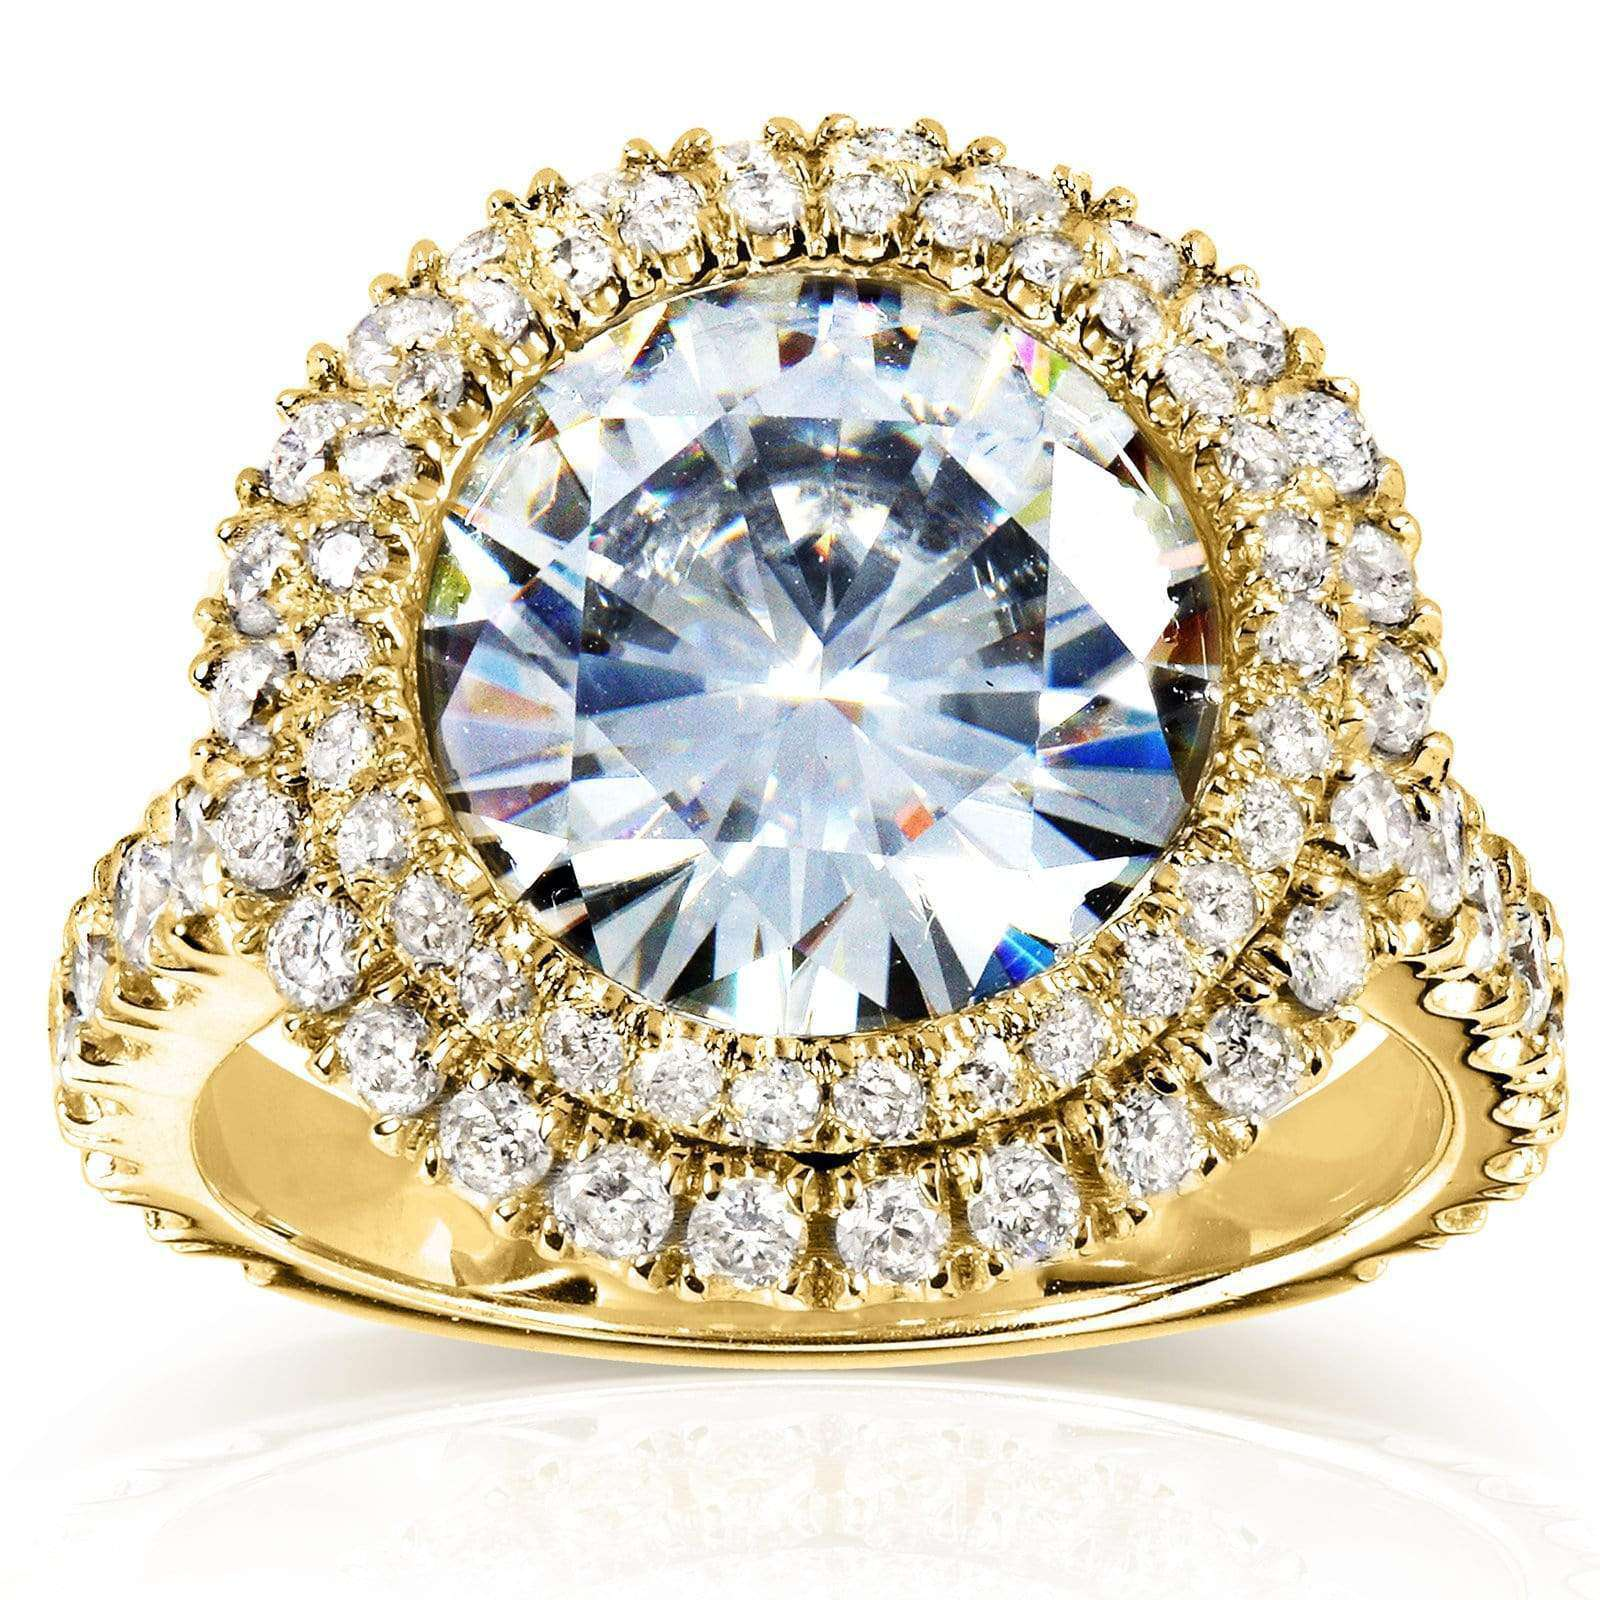 Best Double Halo Near-Colorless (F-G) Moissanite Engagement Ring with Diamond 5 7/8 CTW 14k Yellow Gold - 10